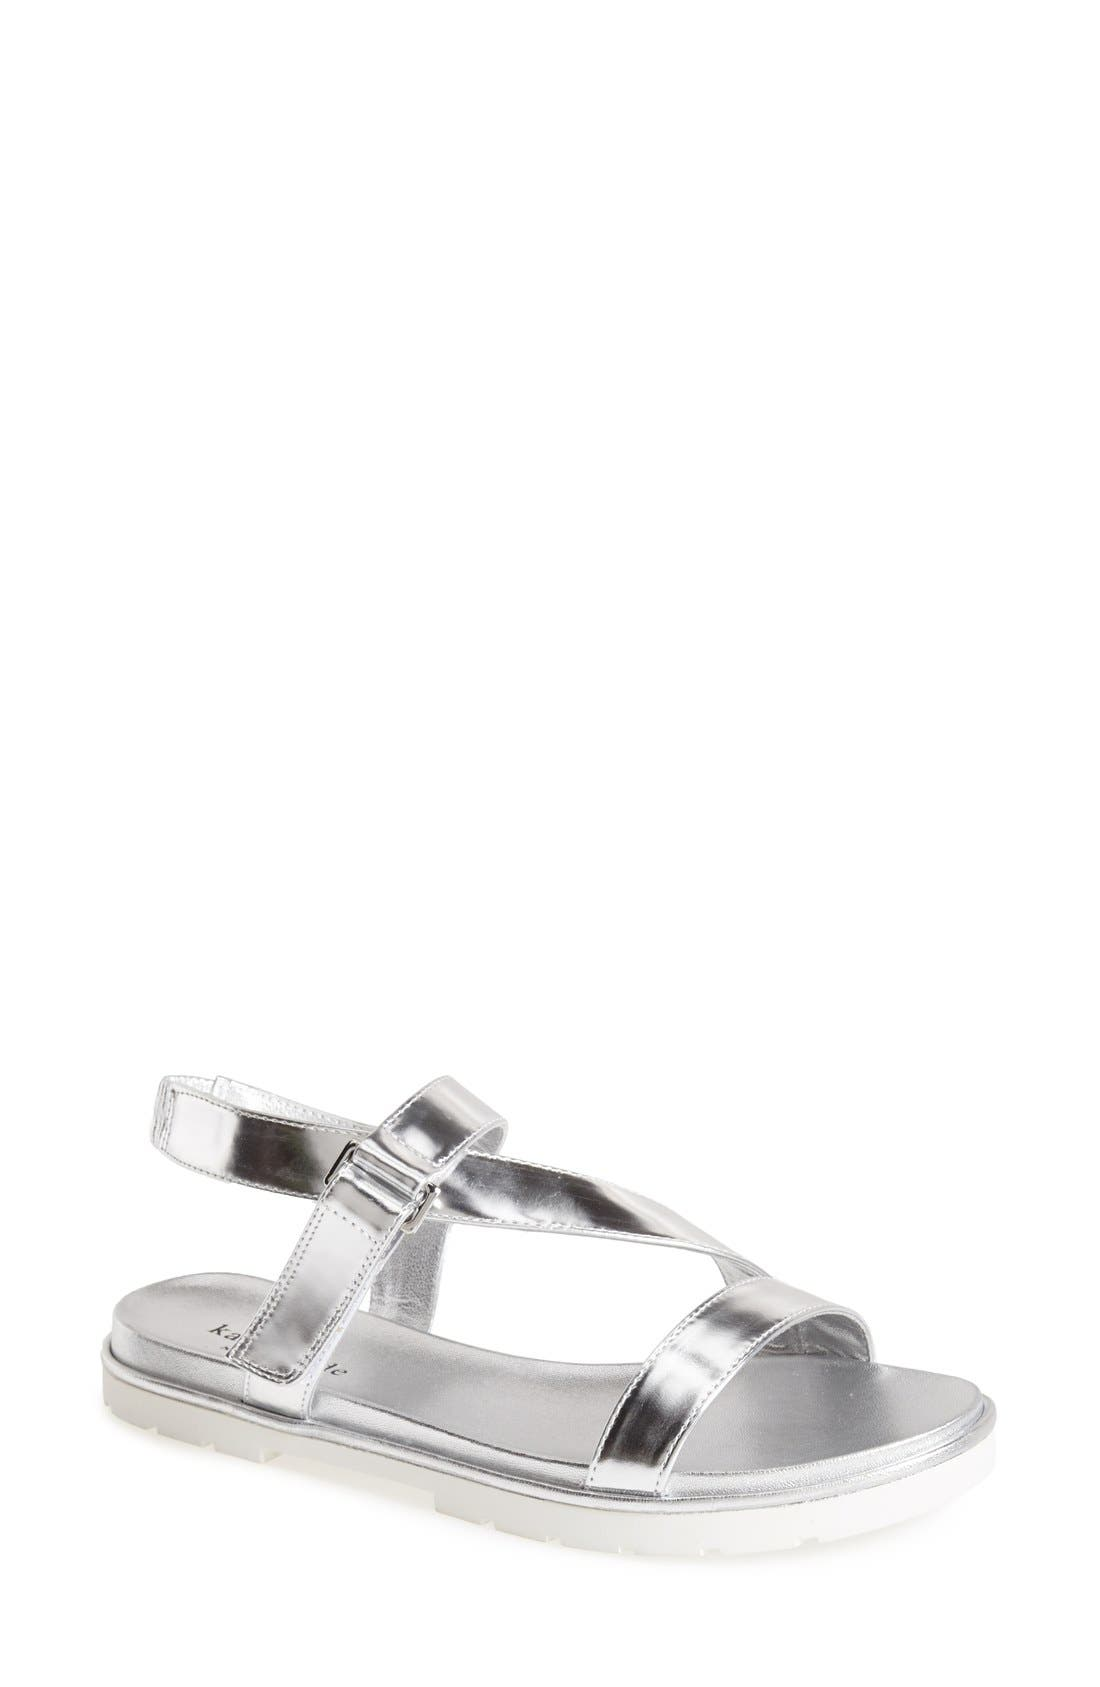 Alternate Image 1 Selected - kate spade new york 'mckee' leather sandal (Women)